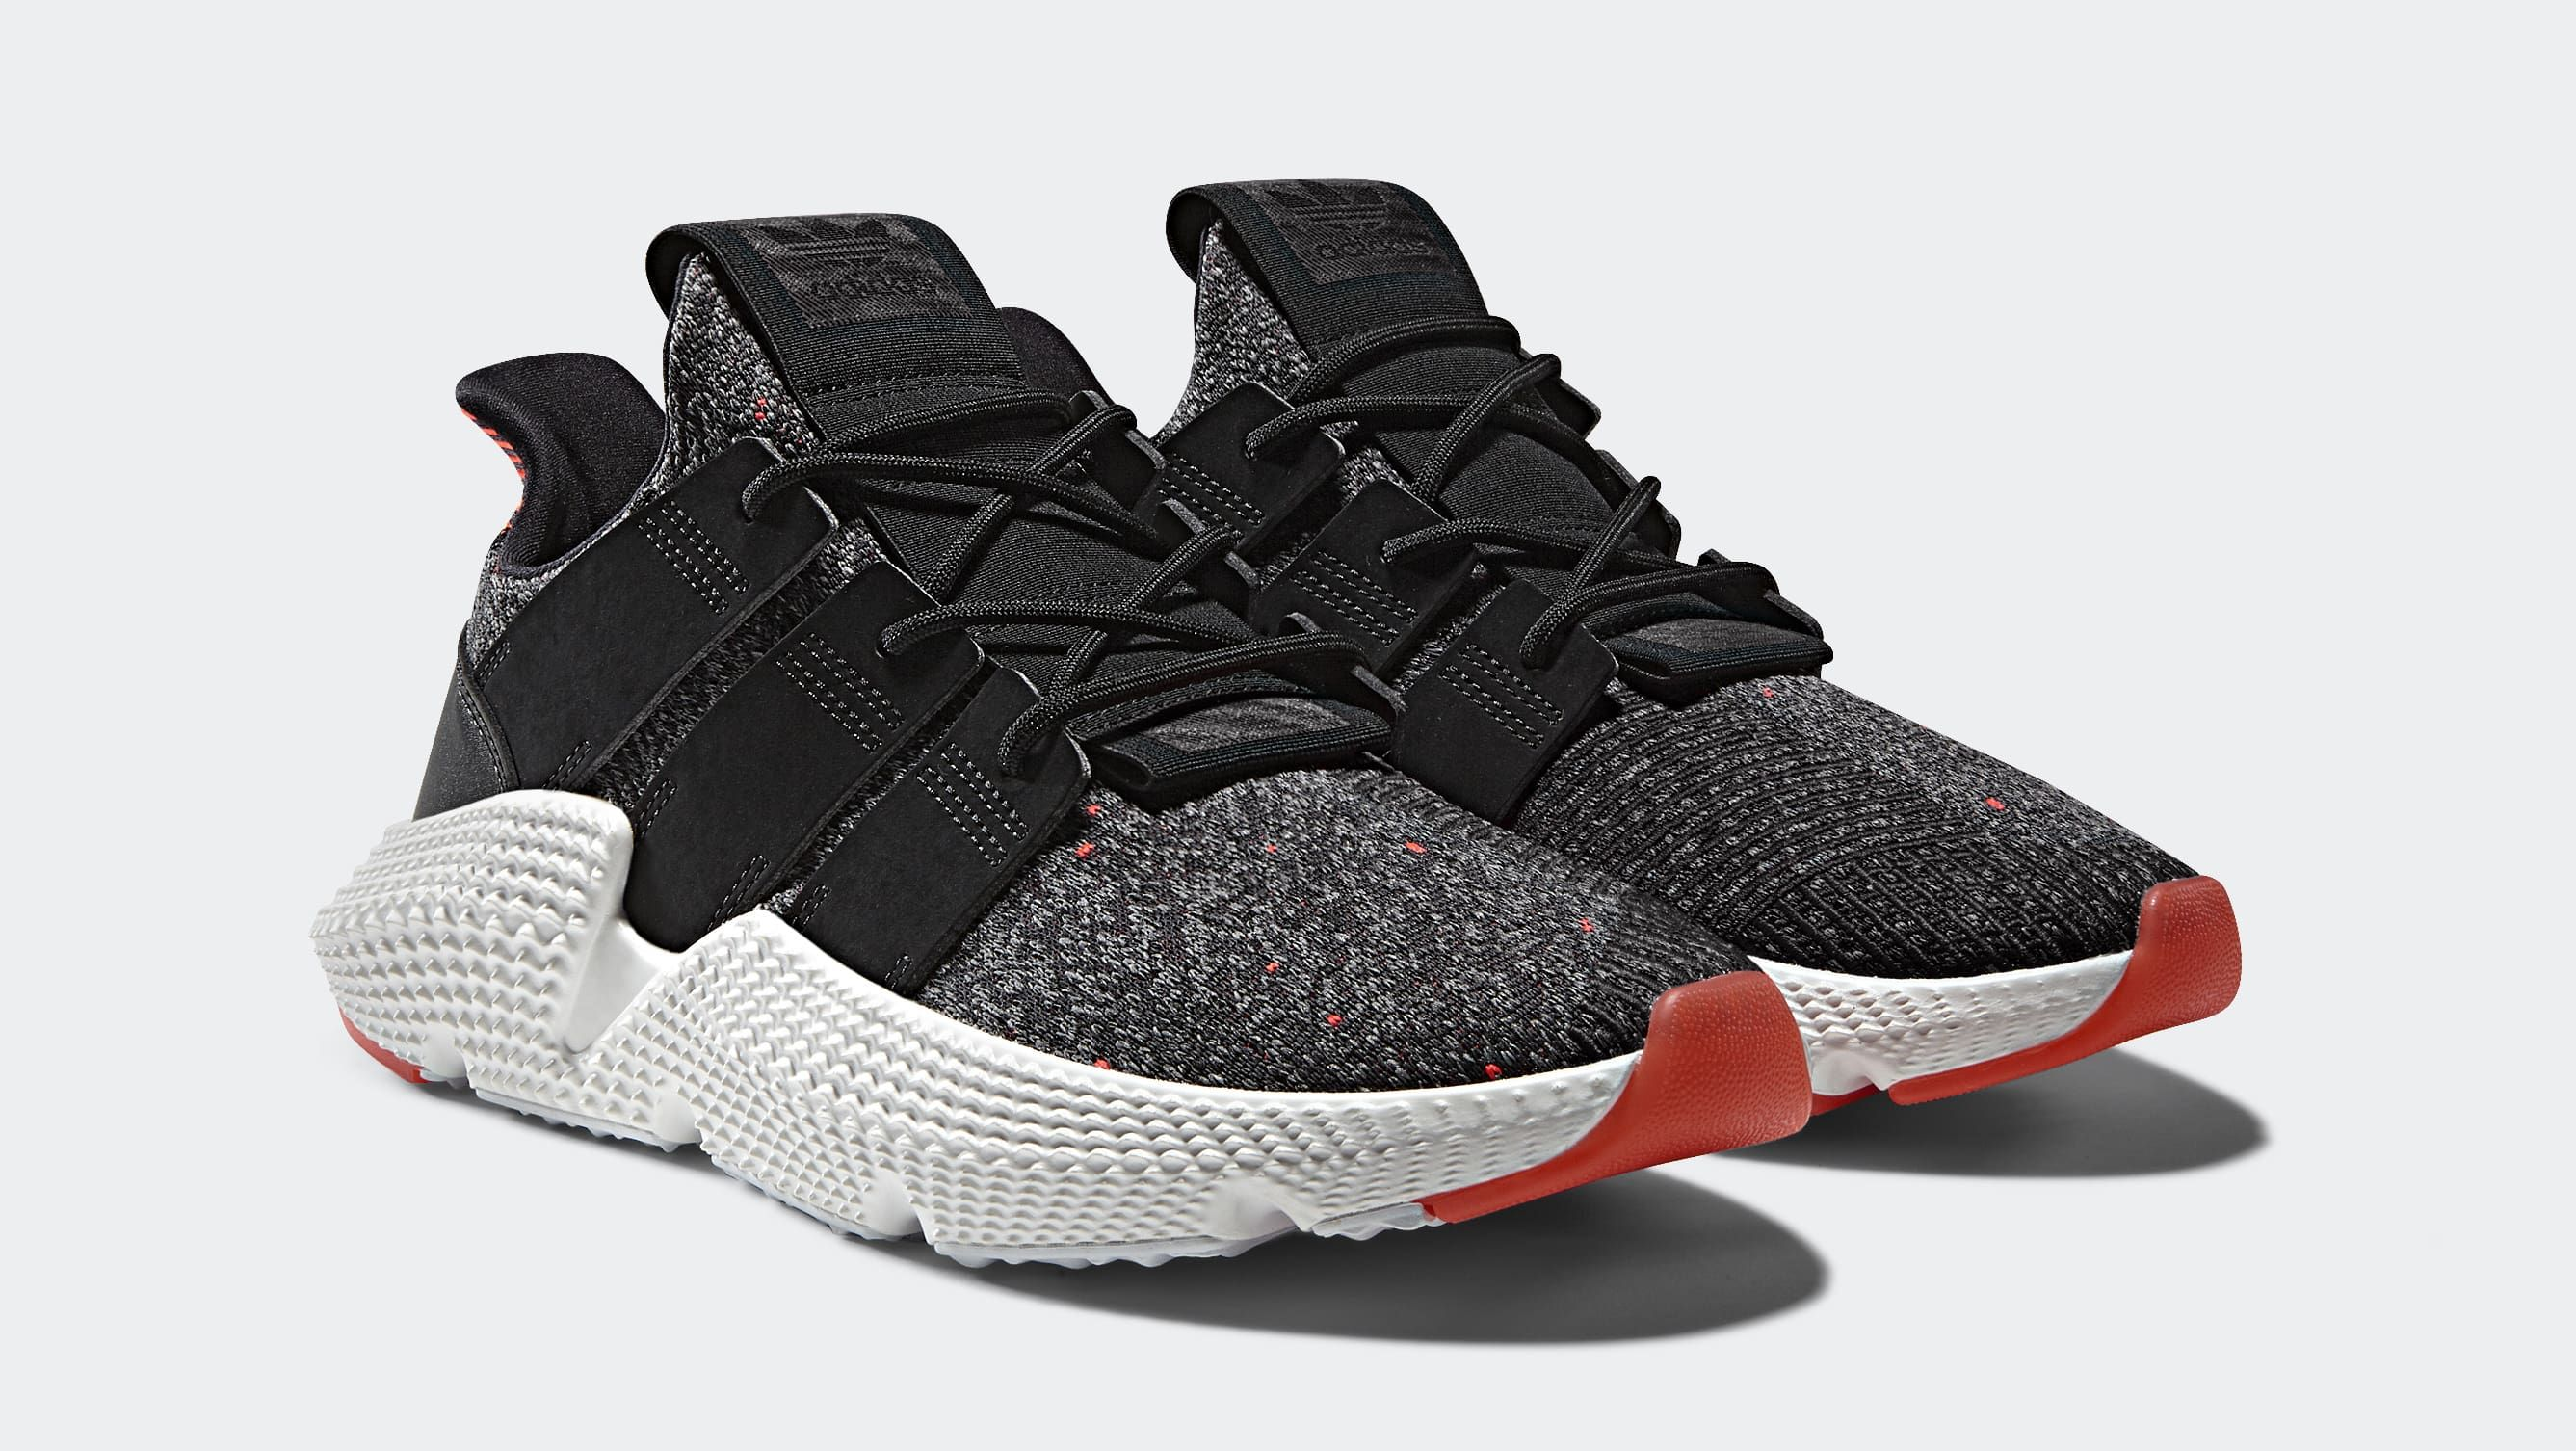 Adidas Prophere | Sneakers, Adidas, Sneakers fashion